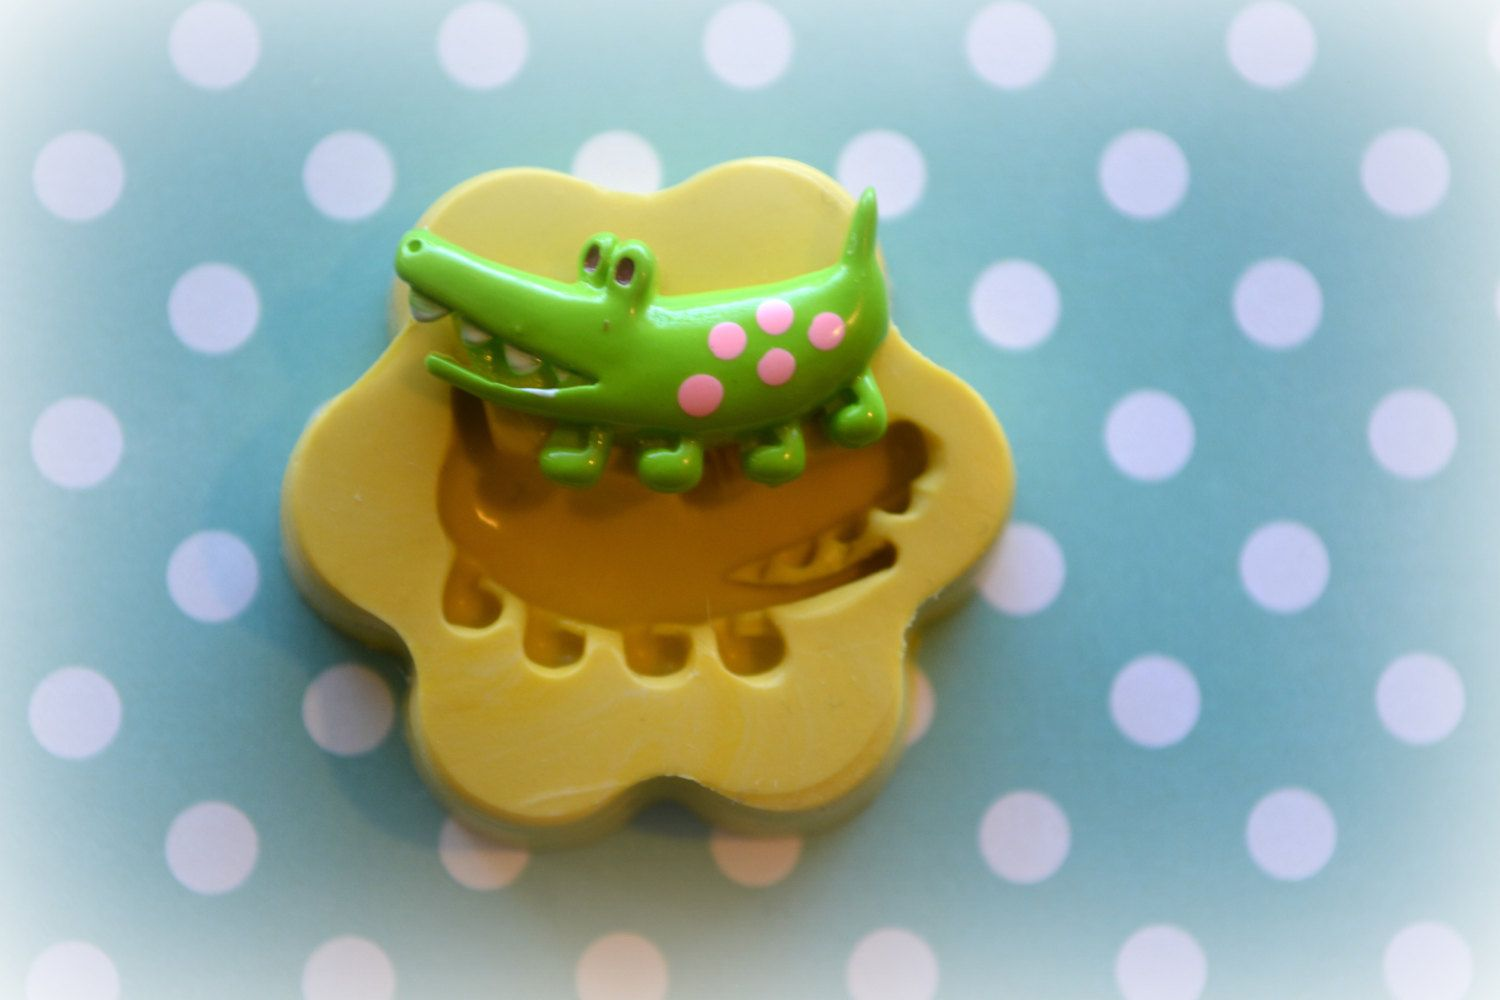 DM0078 Alligator Crocodile Cabochon Silicone by DecodenMolds, $3.50